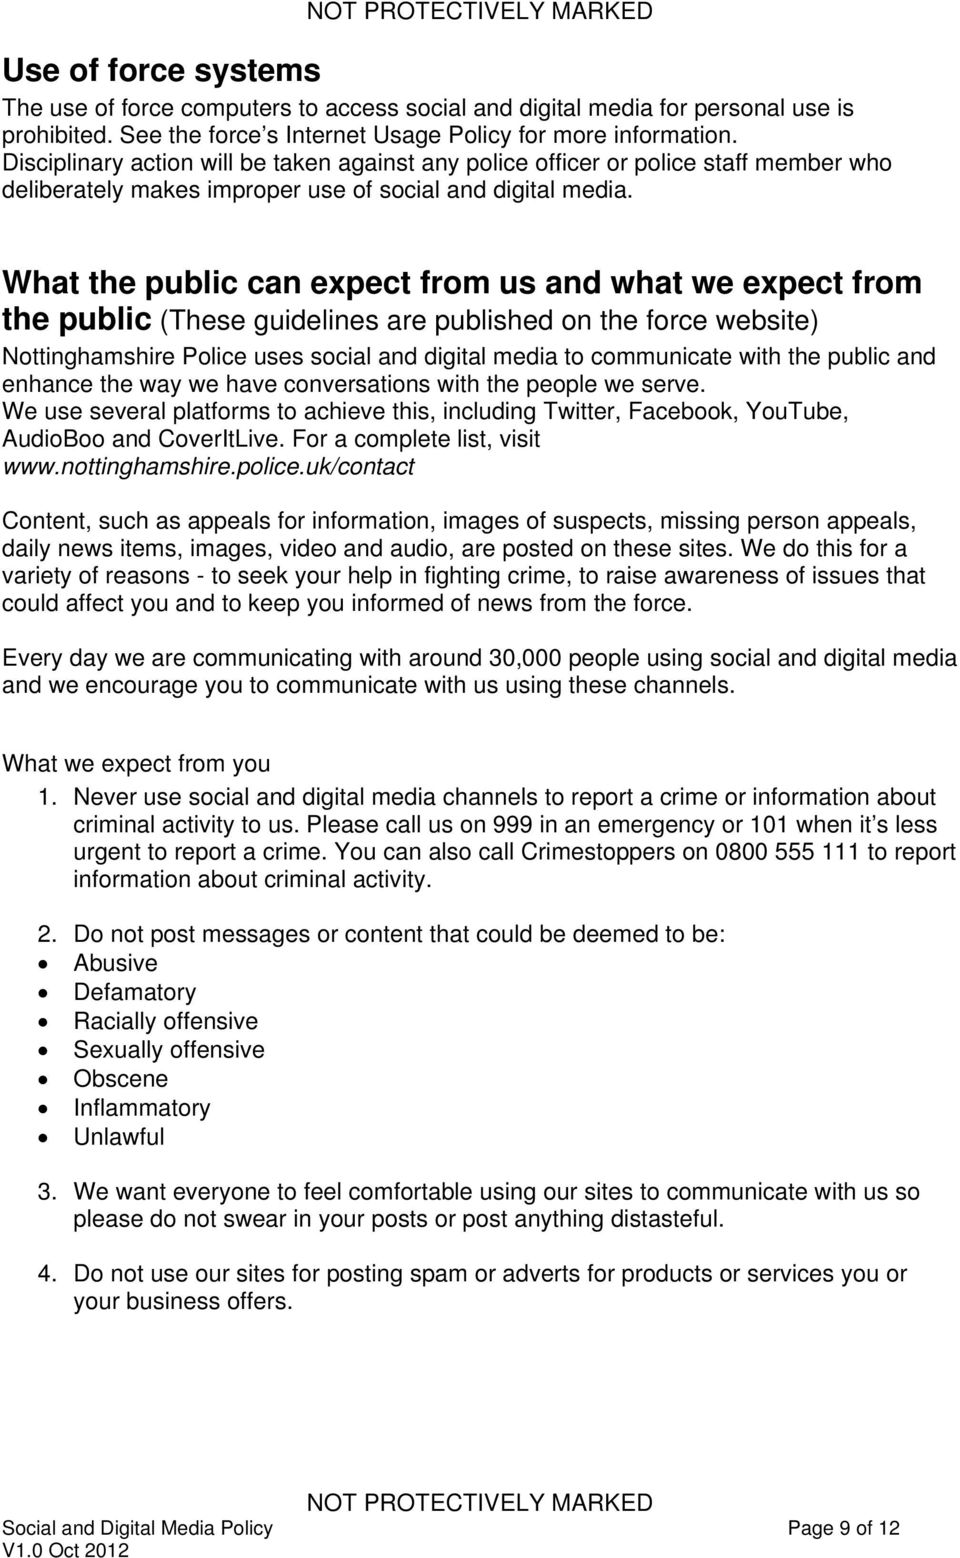 What the public can expect from us and what we expect from the public (These guidelines are published on the force website) Nottinghamshire Police uses social and digital media to communicate with